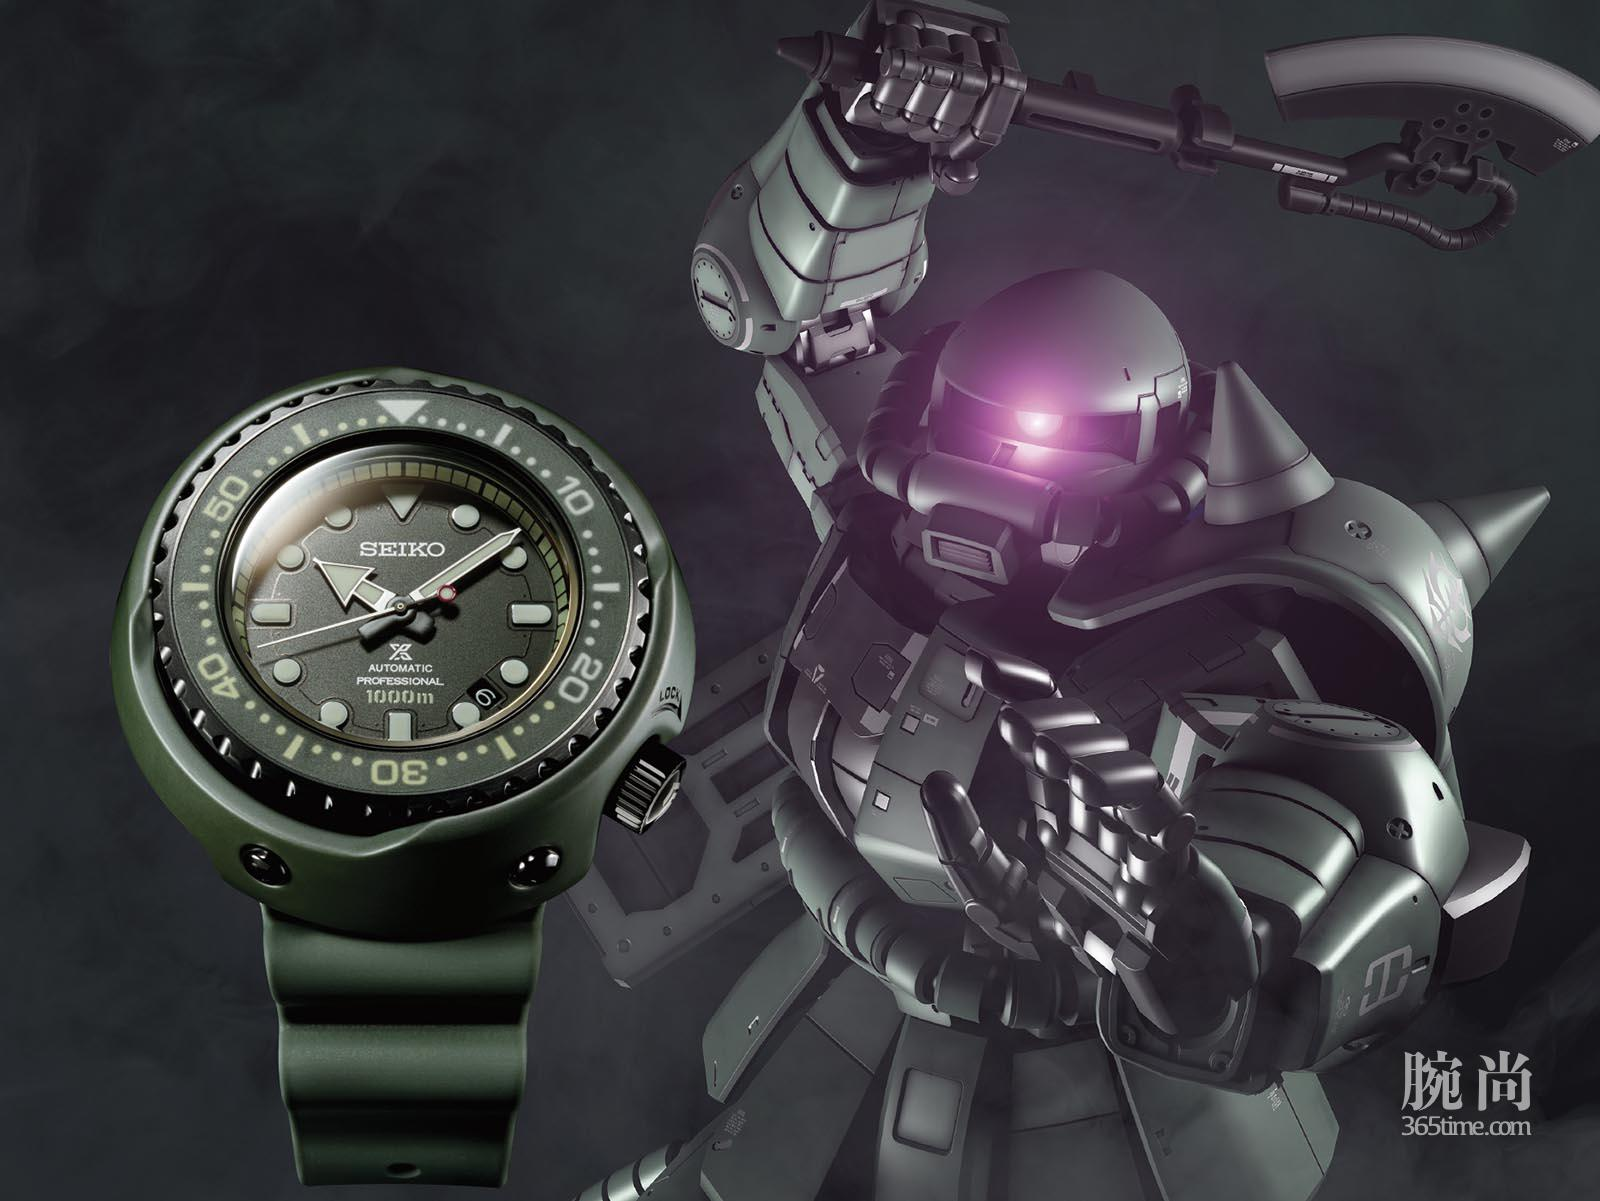 Seiko-Mobile-Suit-Gundam-40th-Anniversary-Mass-Production-Type-Zaku-Limited-Edition-SLA029J1.jpg